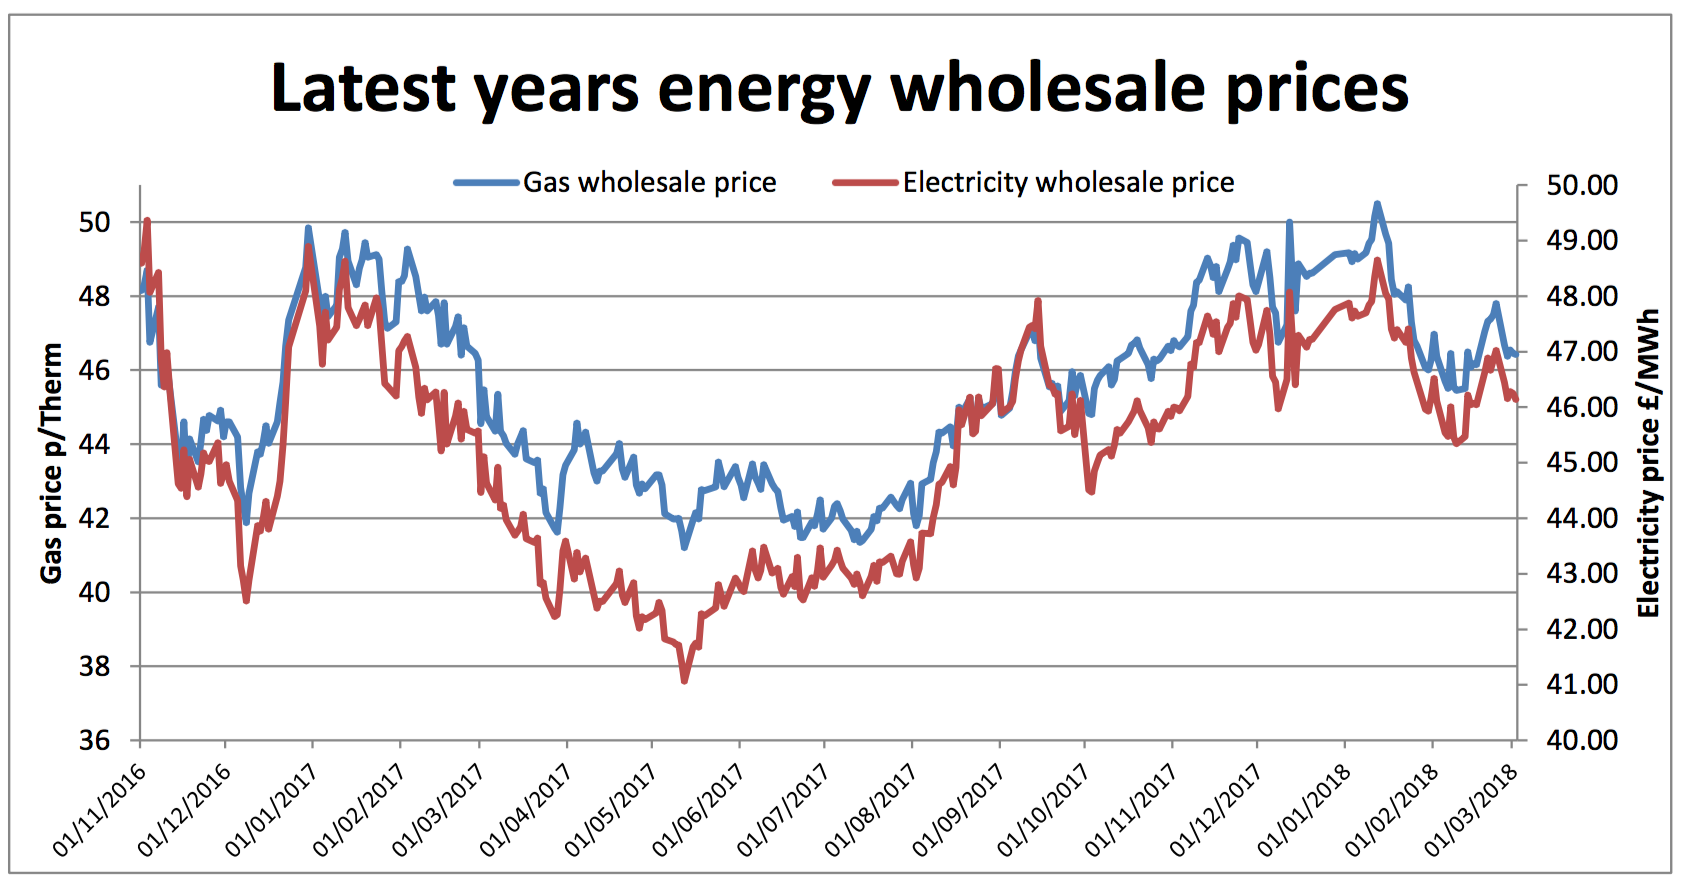 annual wholesale energy prices